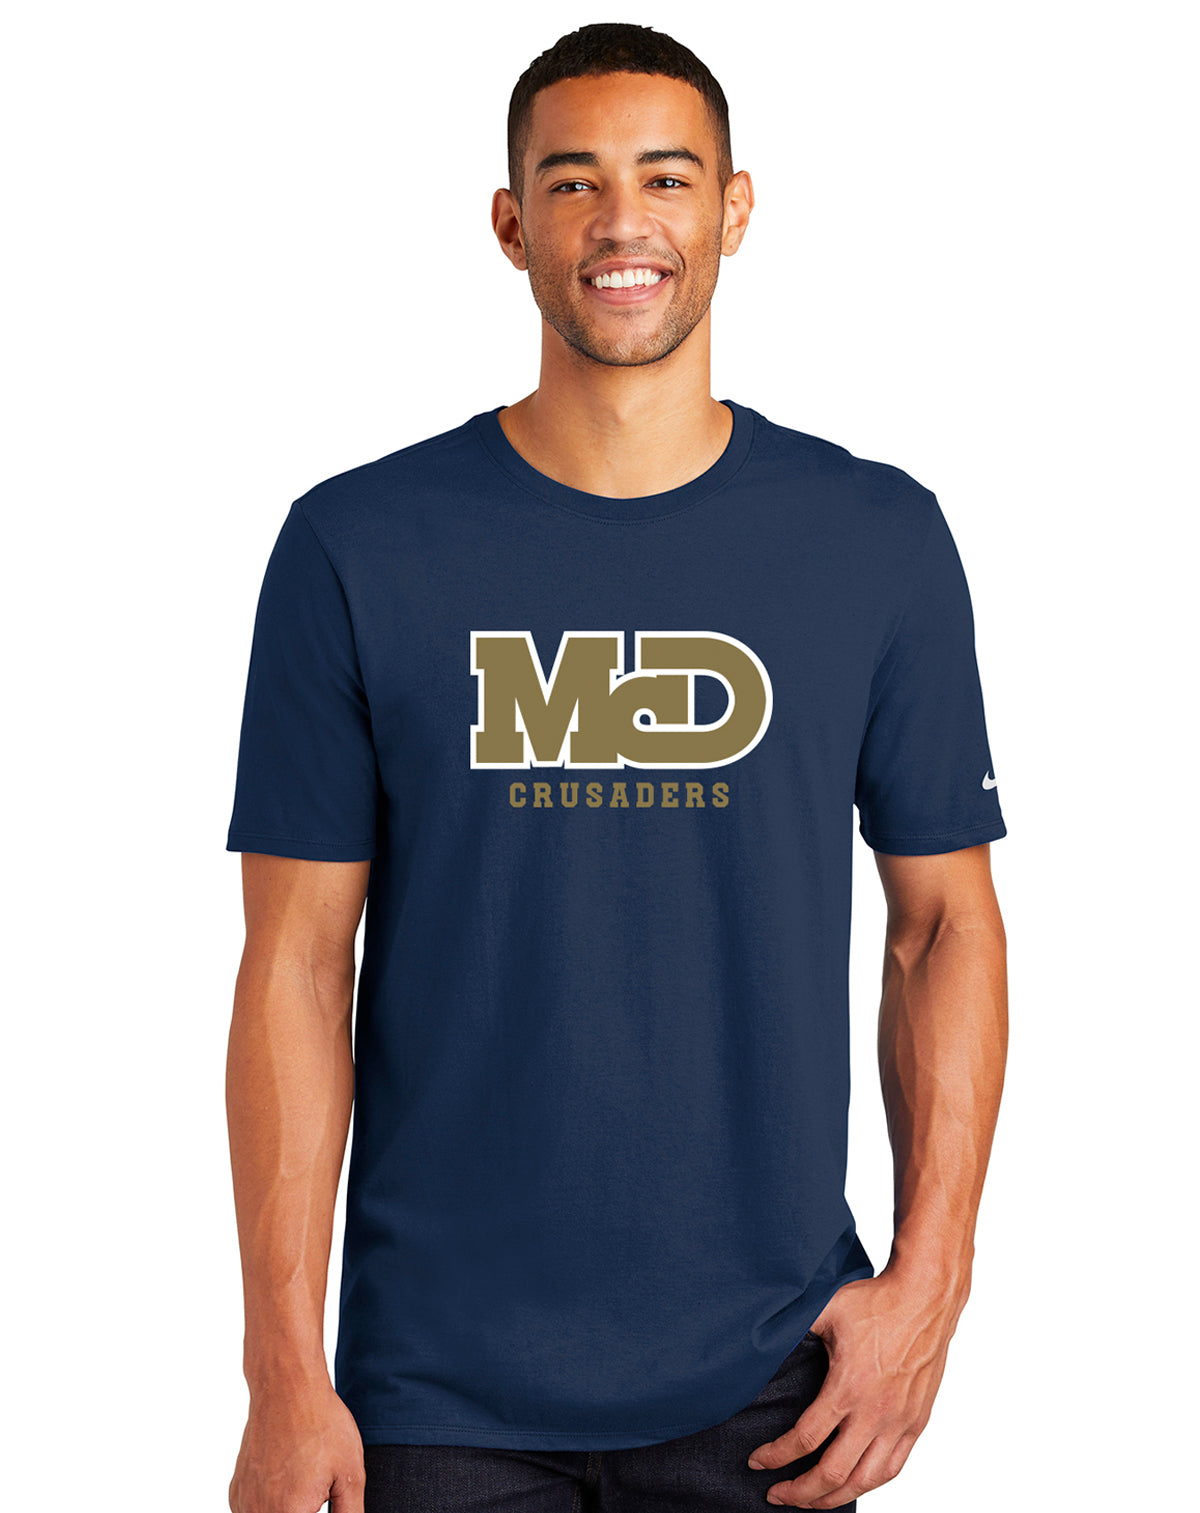 MCD NAVY CRUSADERS LOGO SHORT SLEEVE TSHIRT